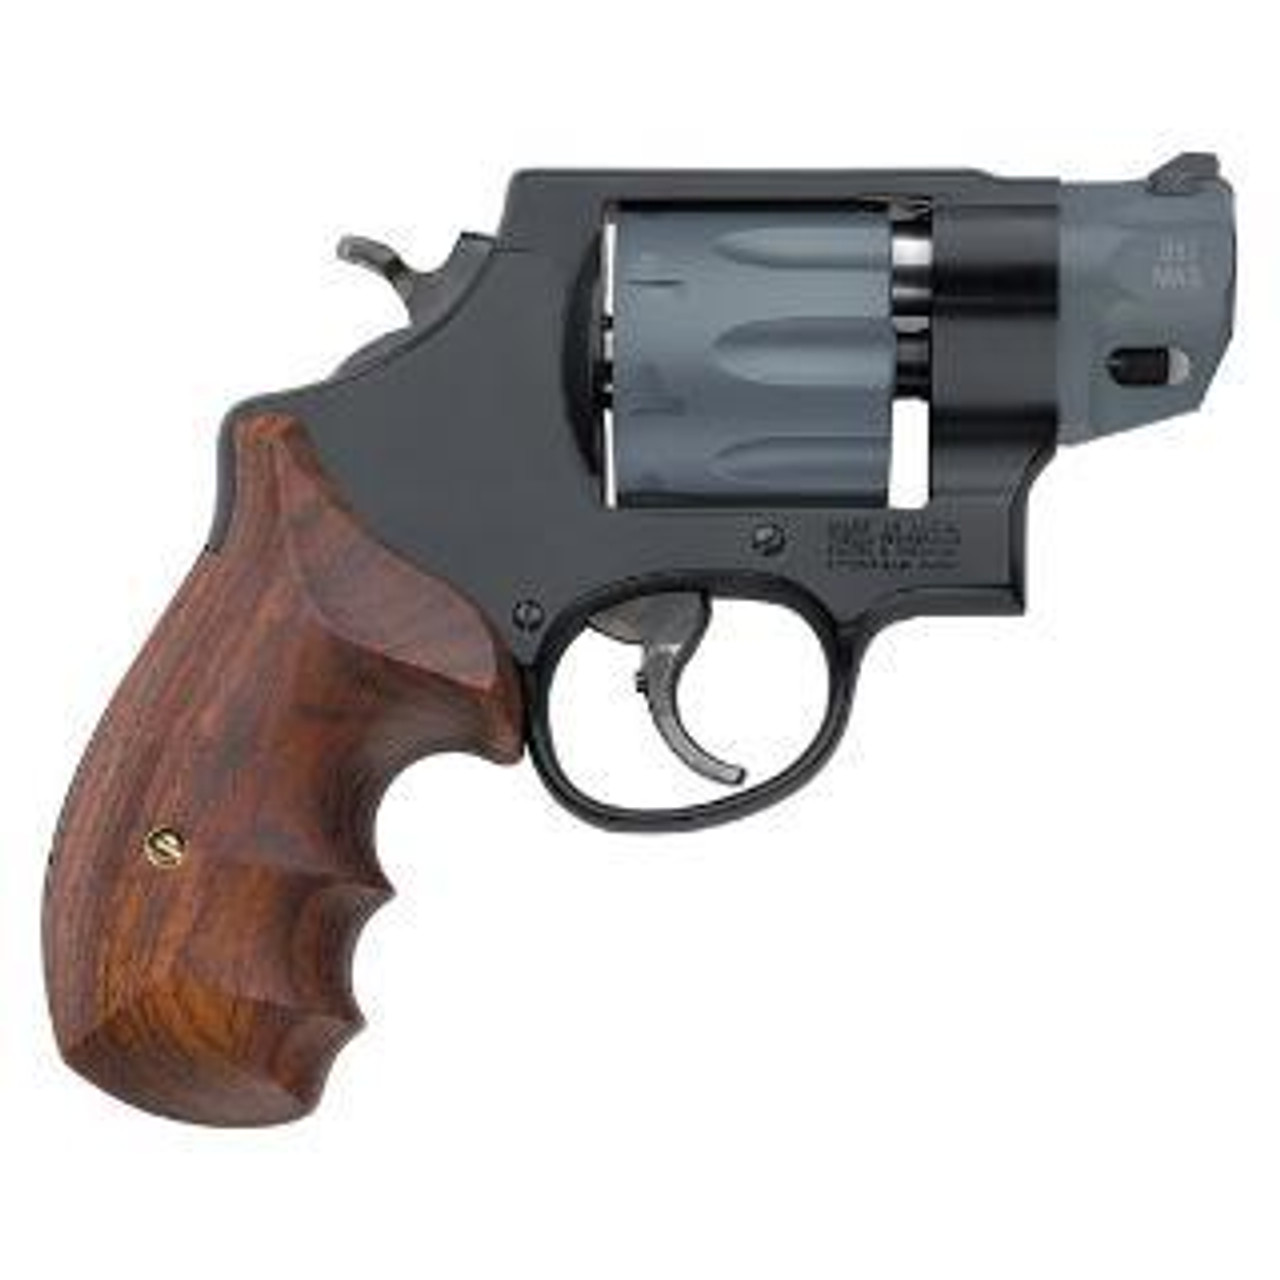 Smith & Wesson 327 Performance Center .357